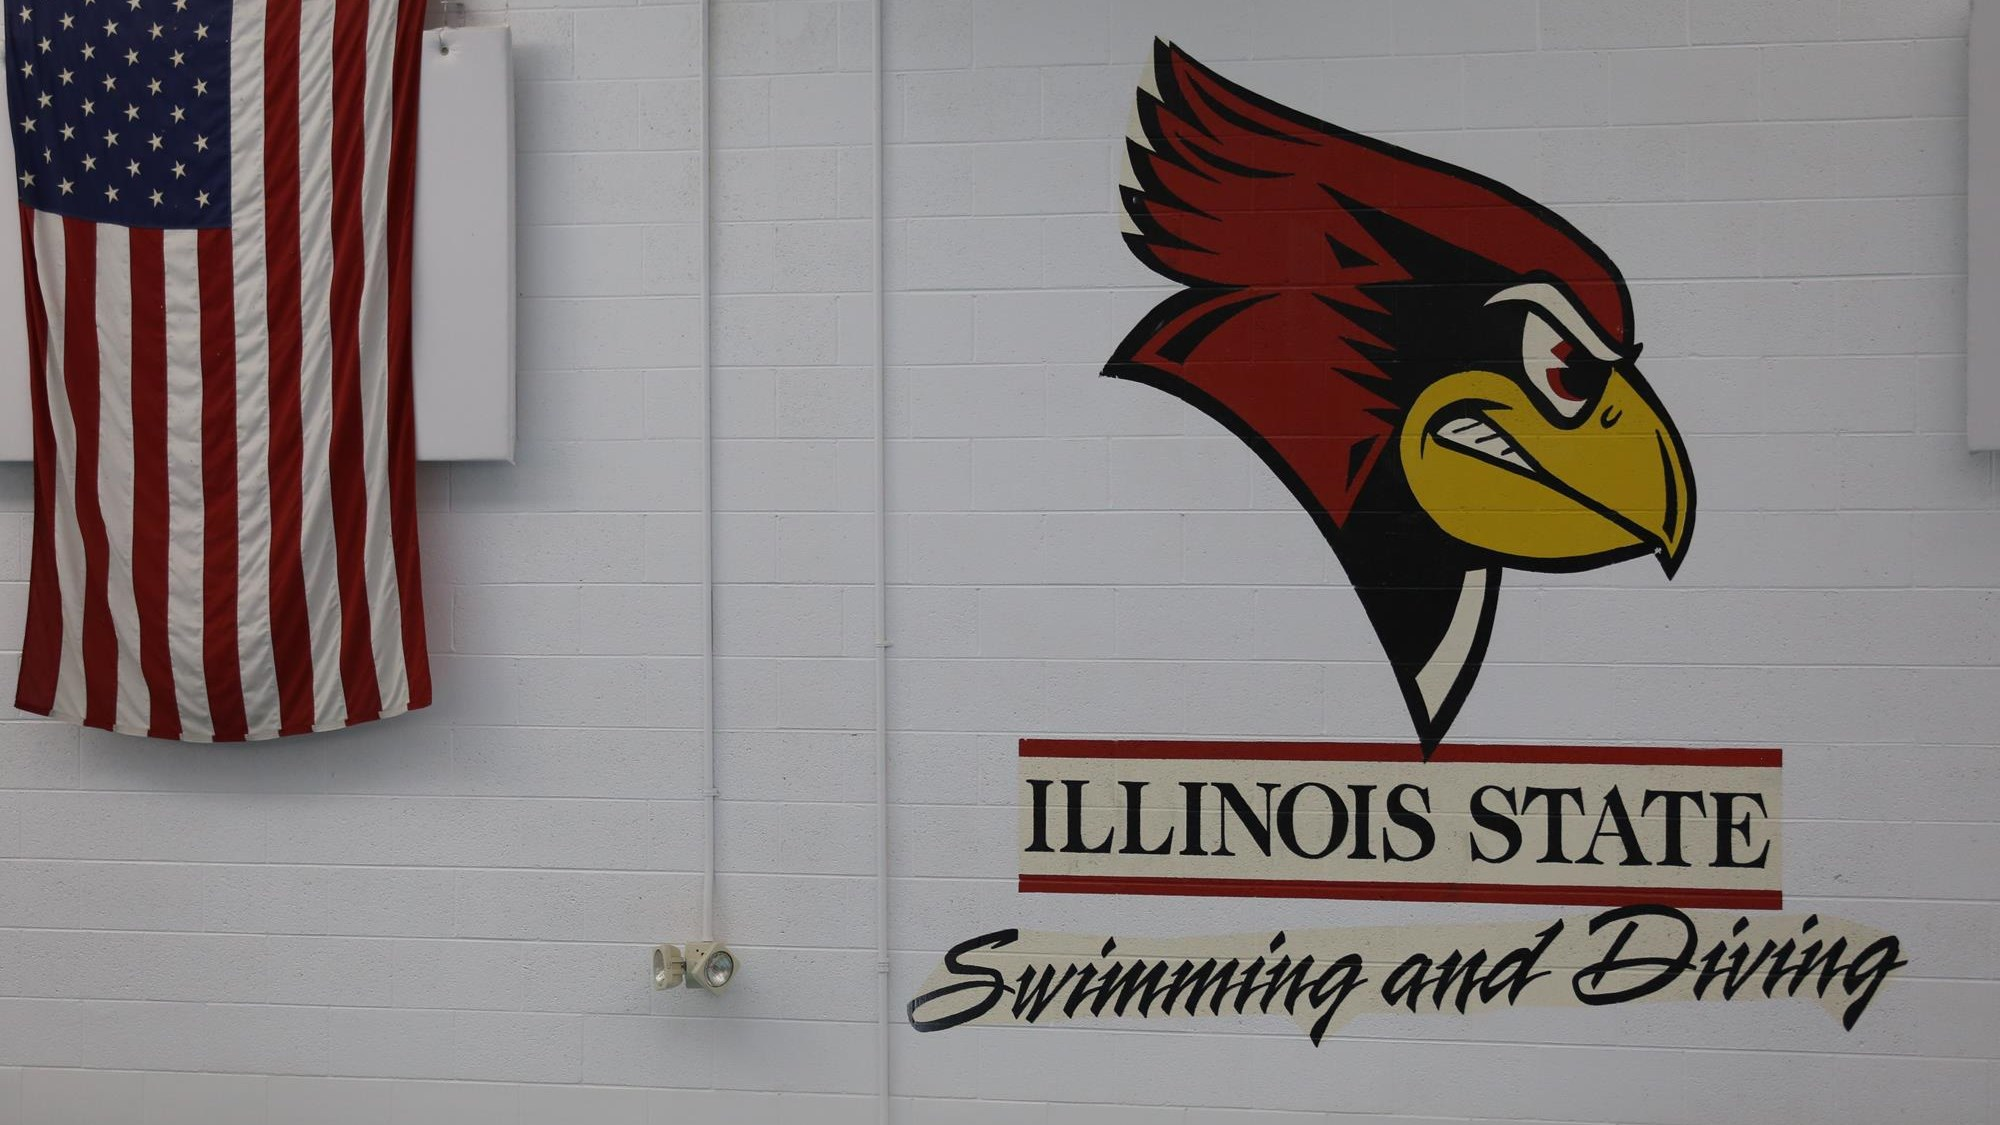 Swimming and Diving - Illinois State University Athletics